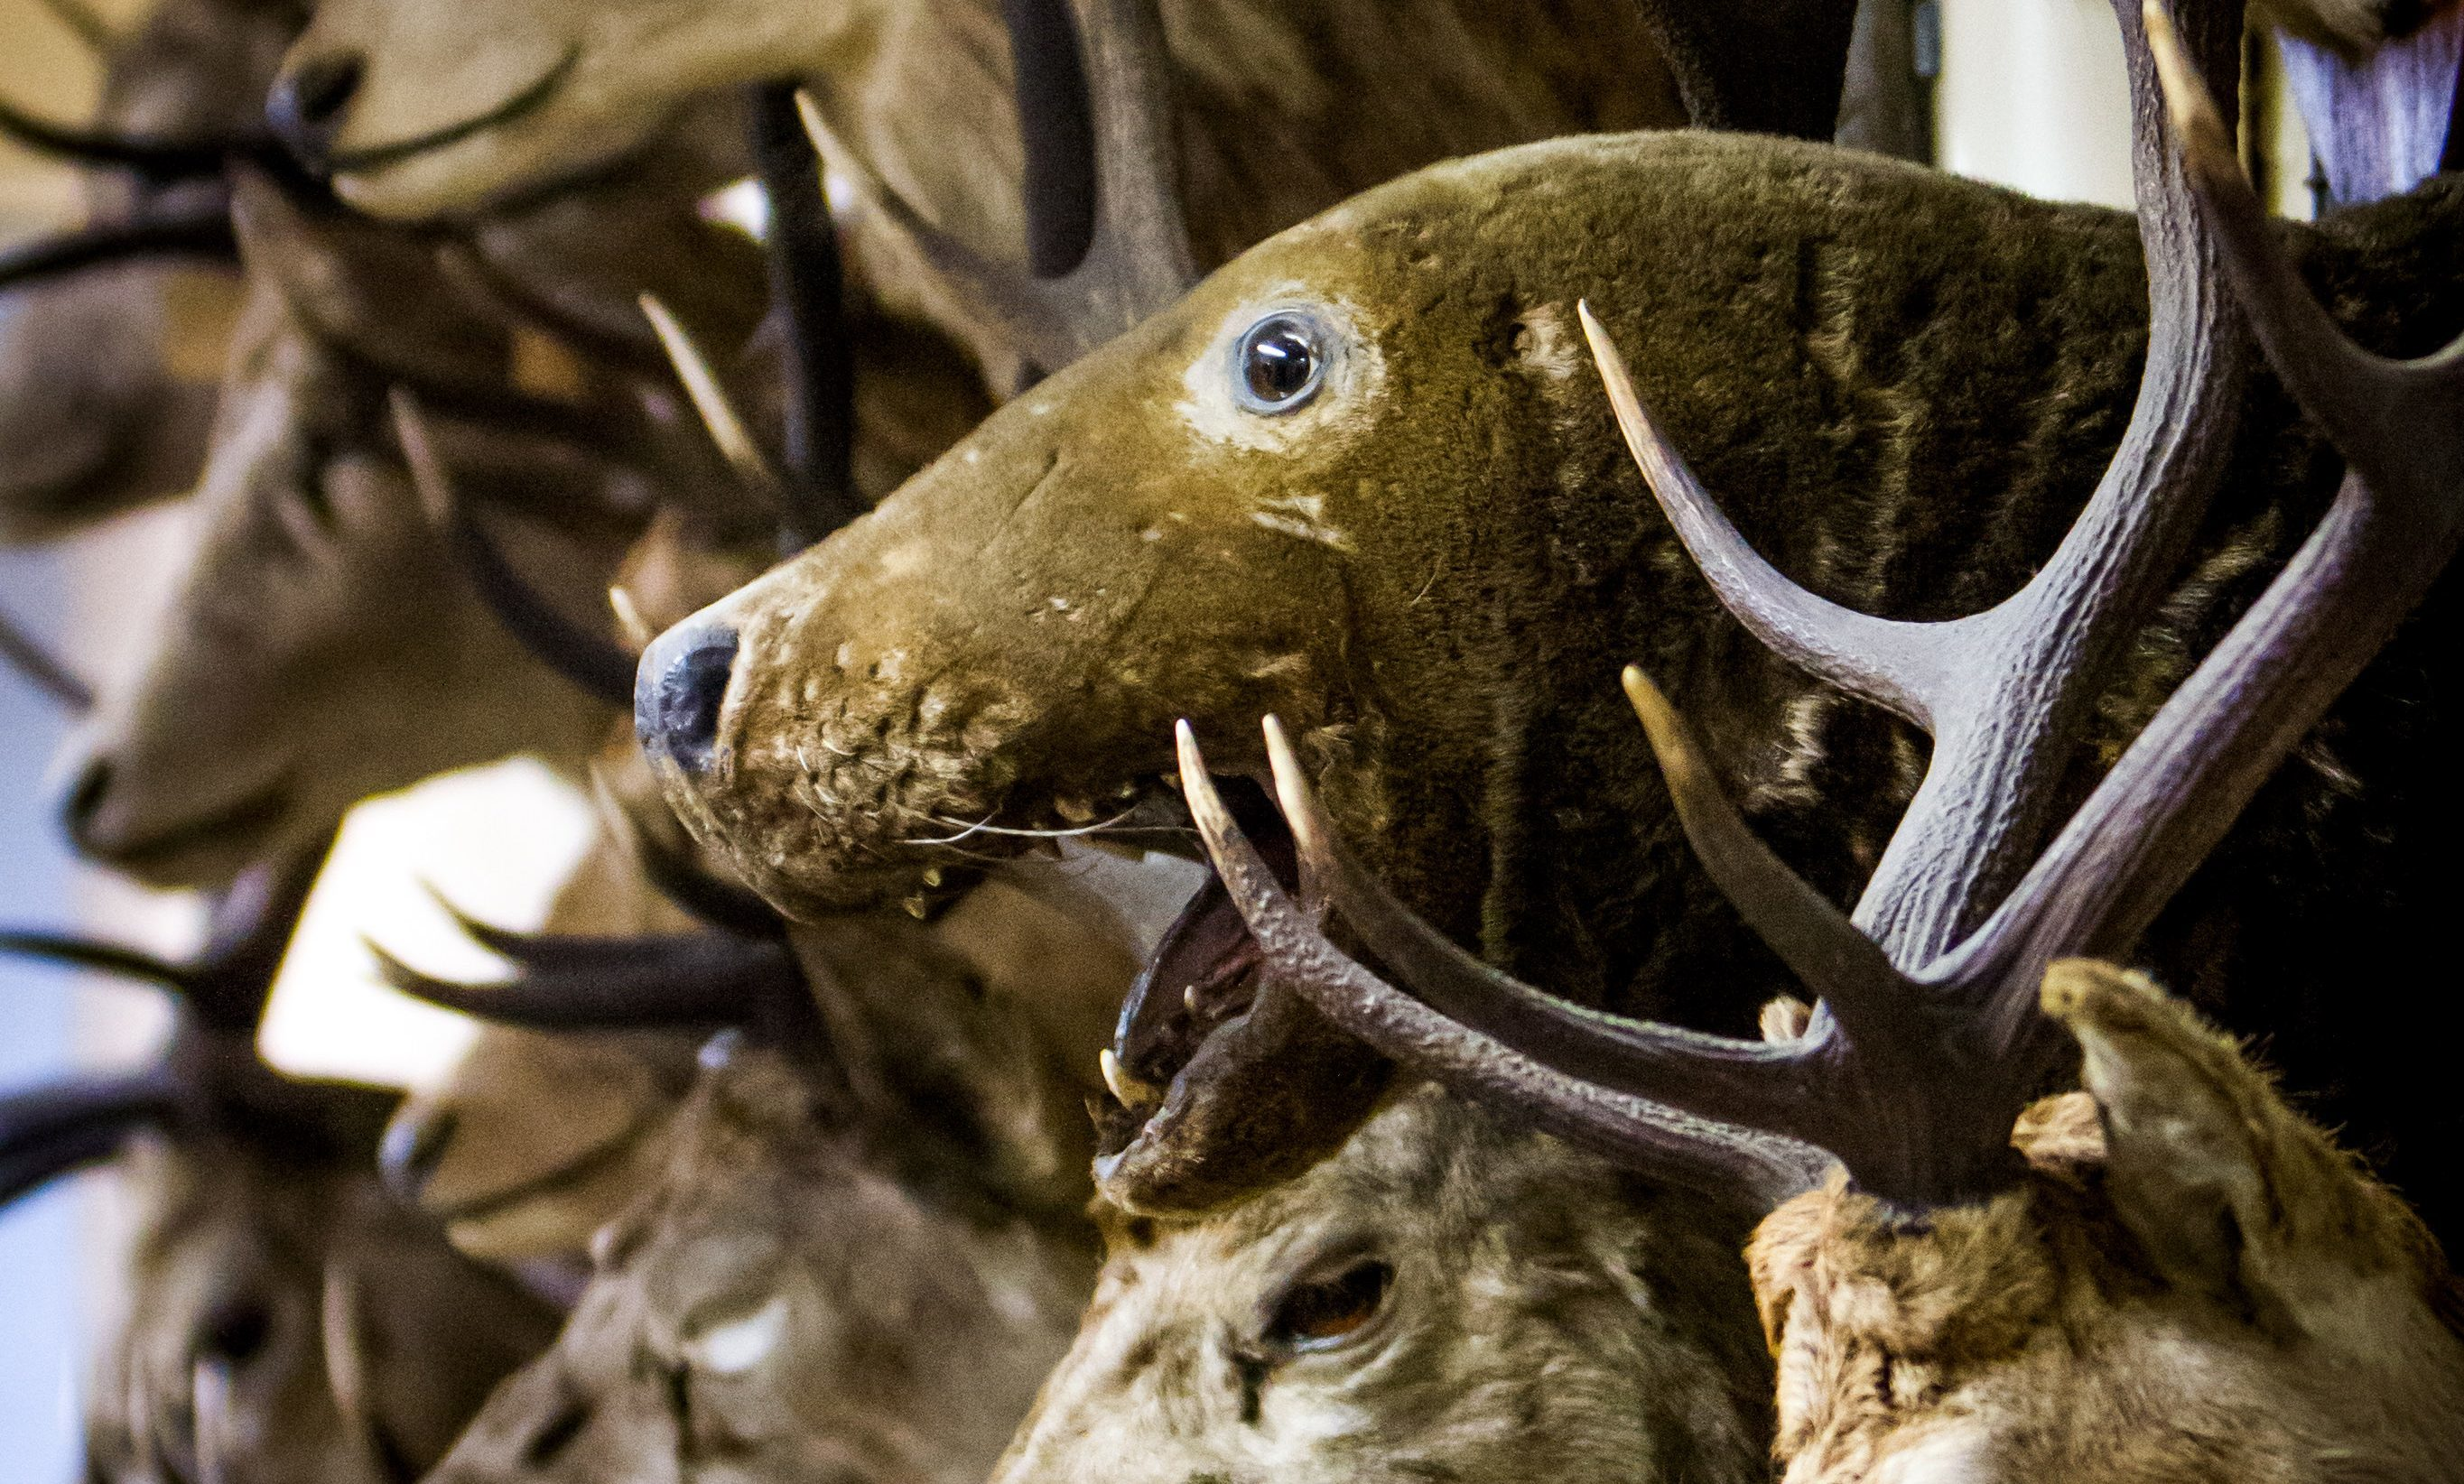 A wall of animal heads is among the vast collection.